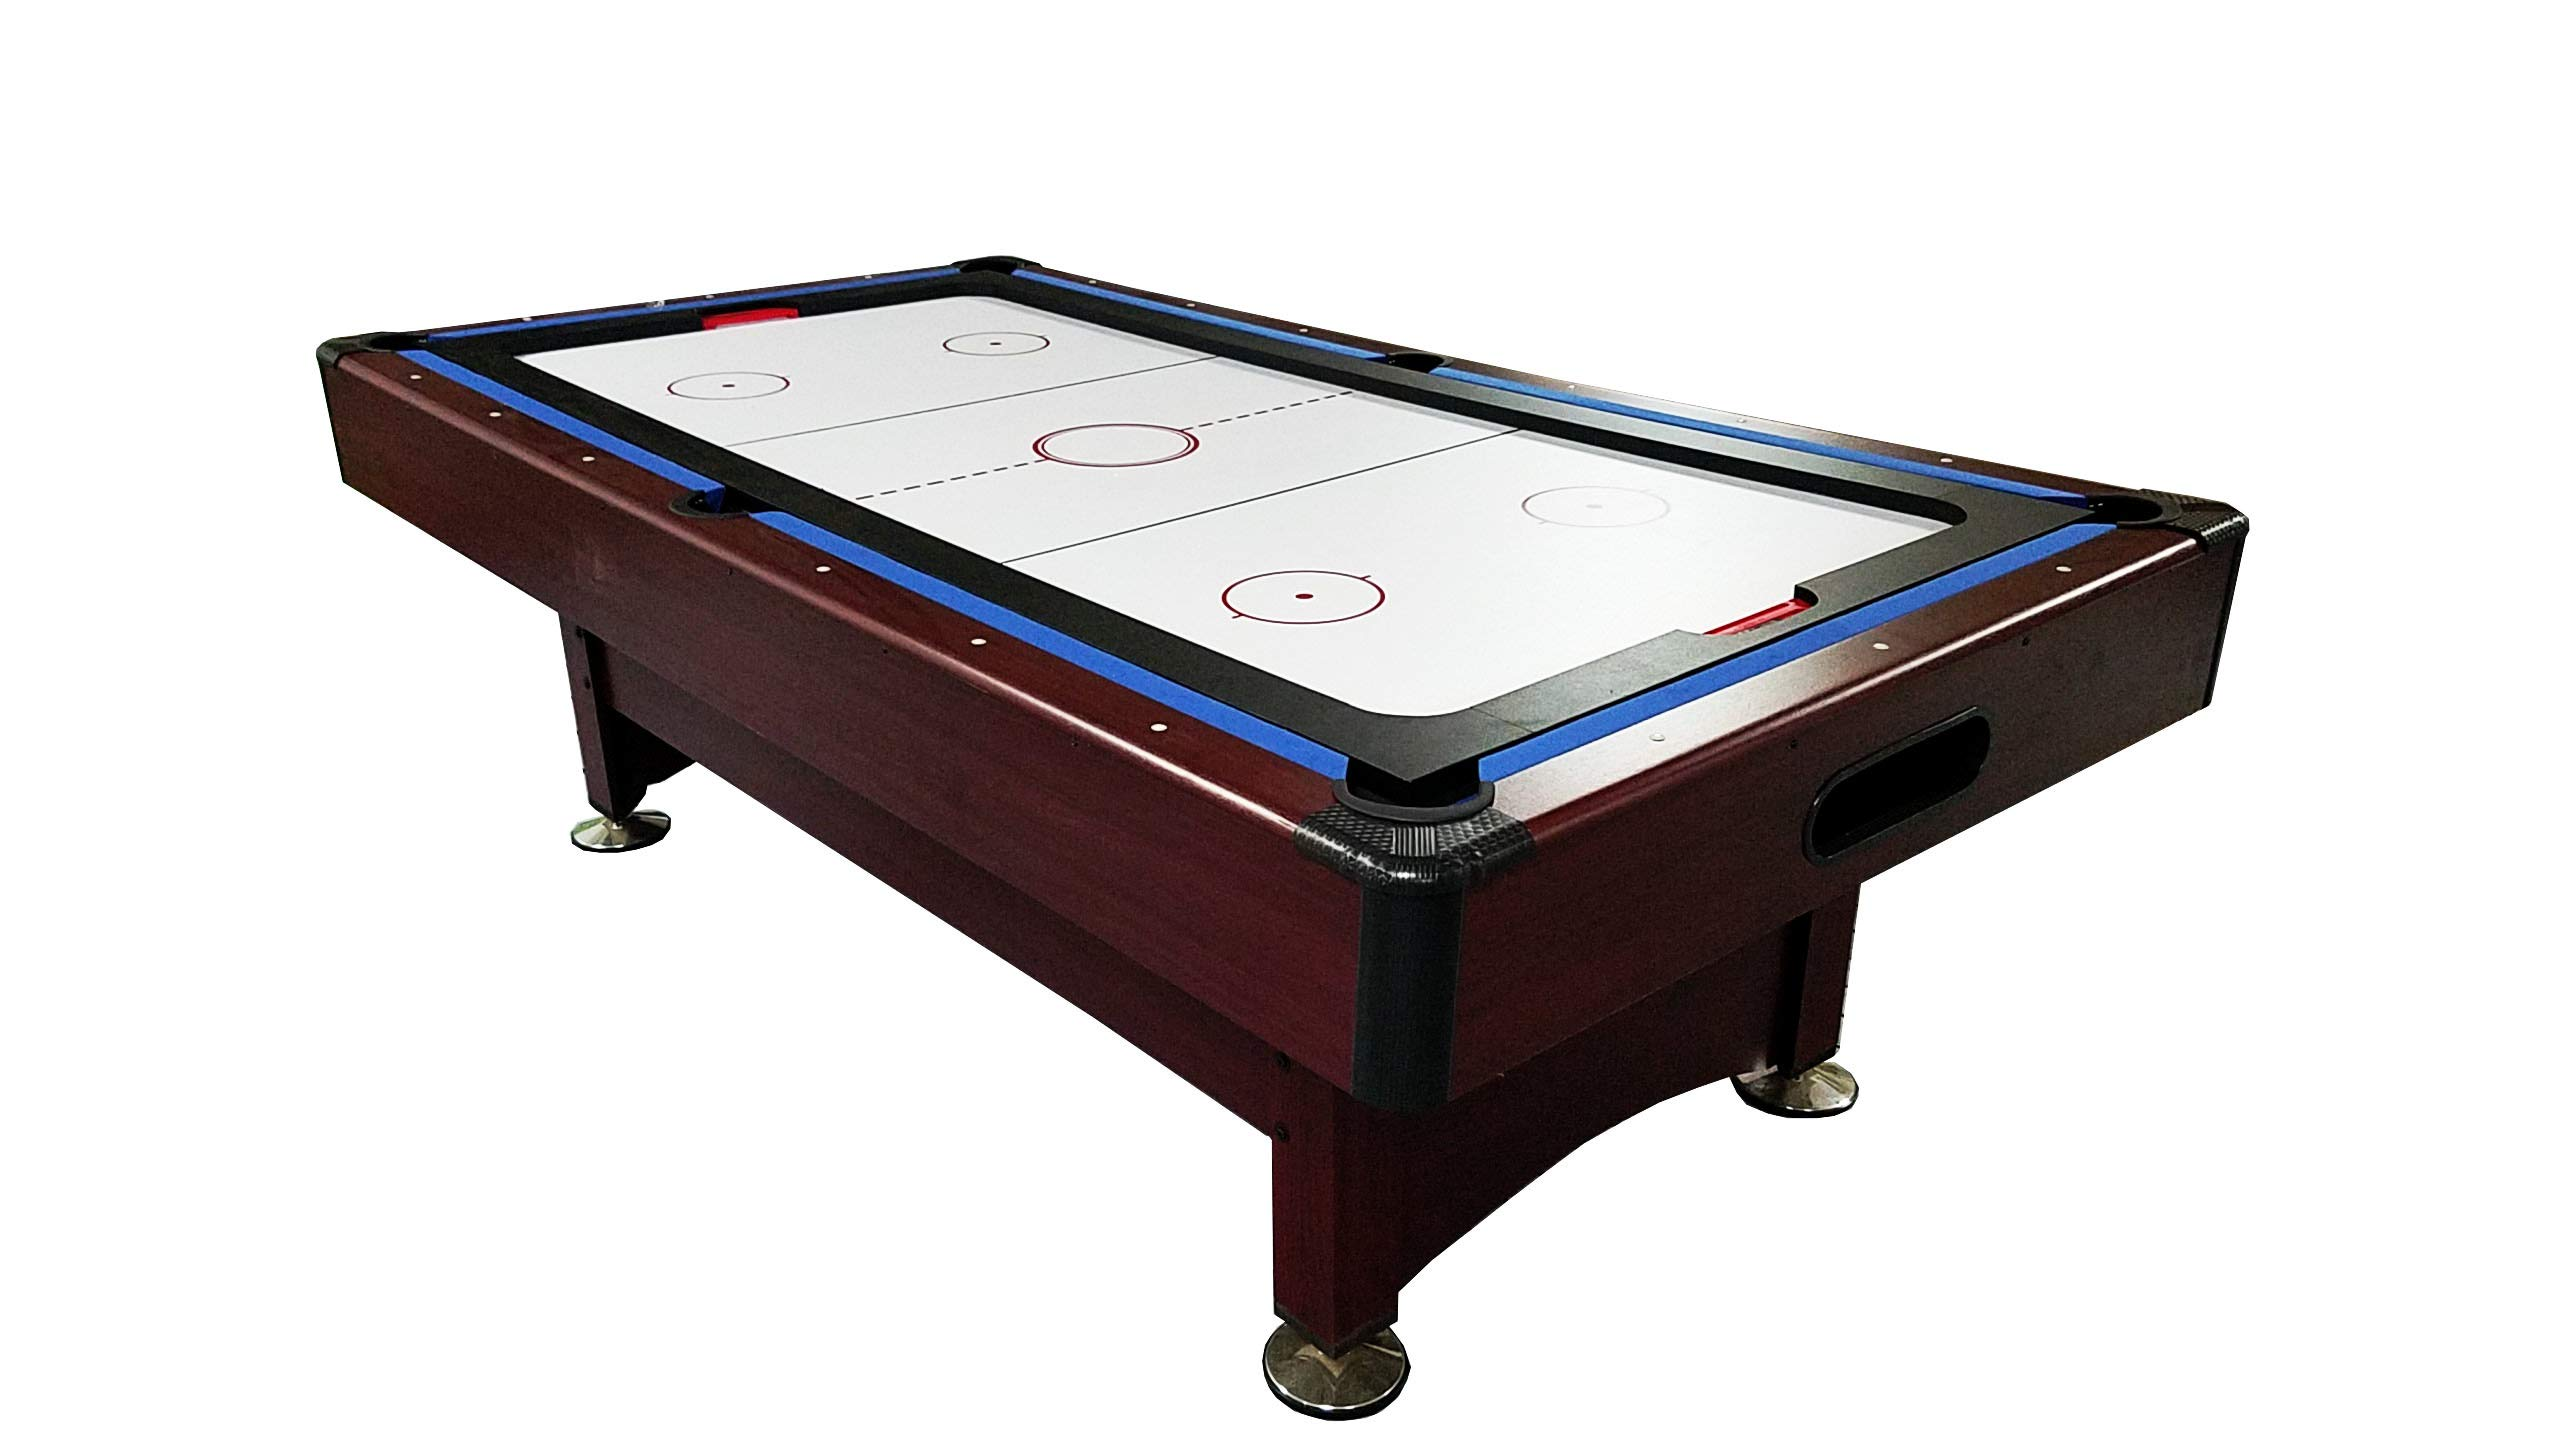 Pool Central Recreational 2-in-1 Pool Billiards and Air Hockey Game Table, 8'